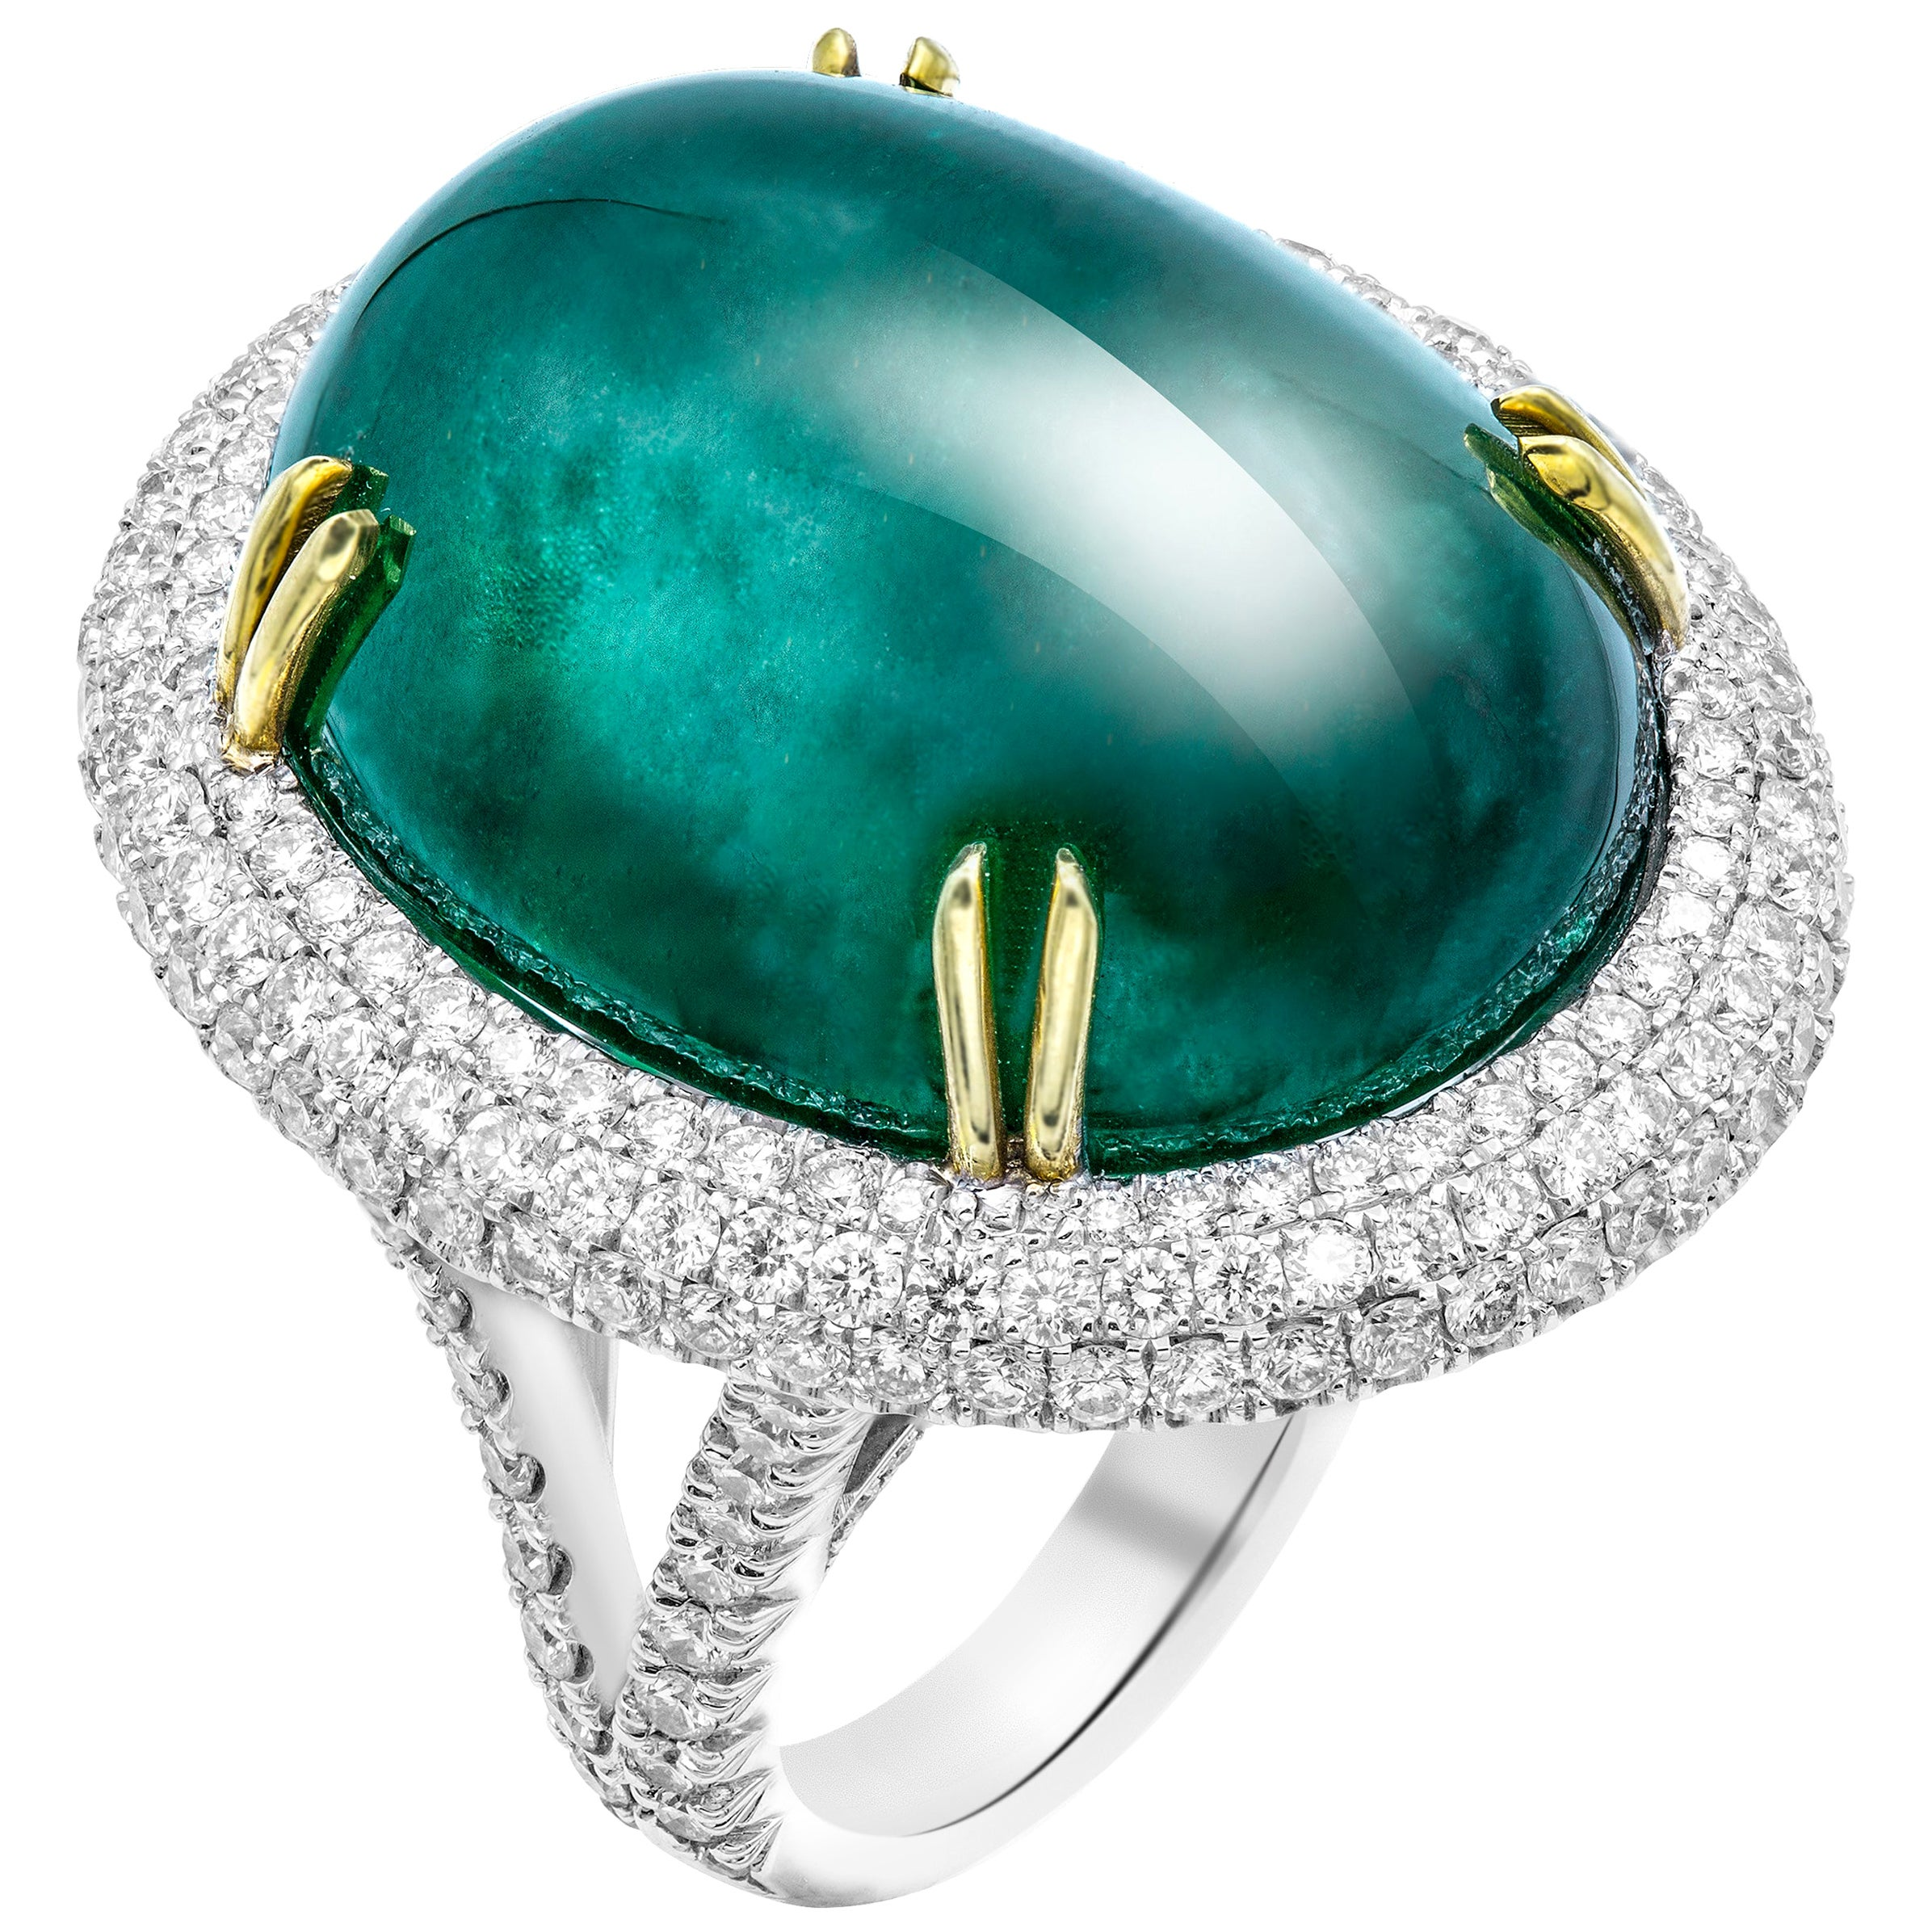 GIA Certified 50.6 Carat Oval Emerald Cabochon Diamond Cocktail Ring